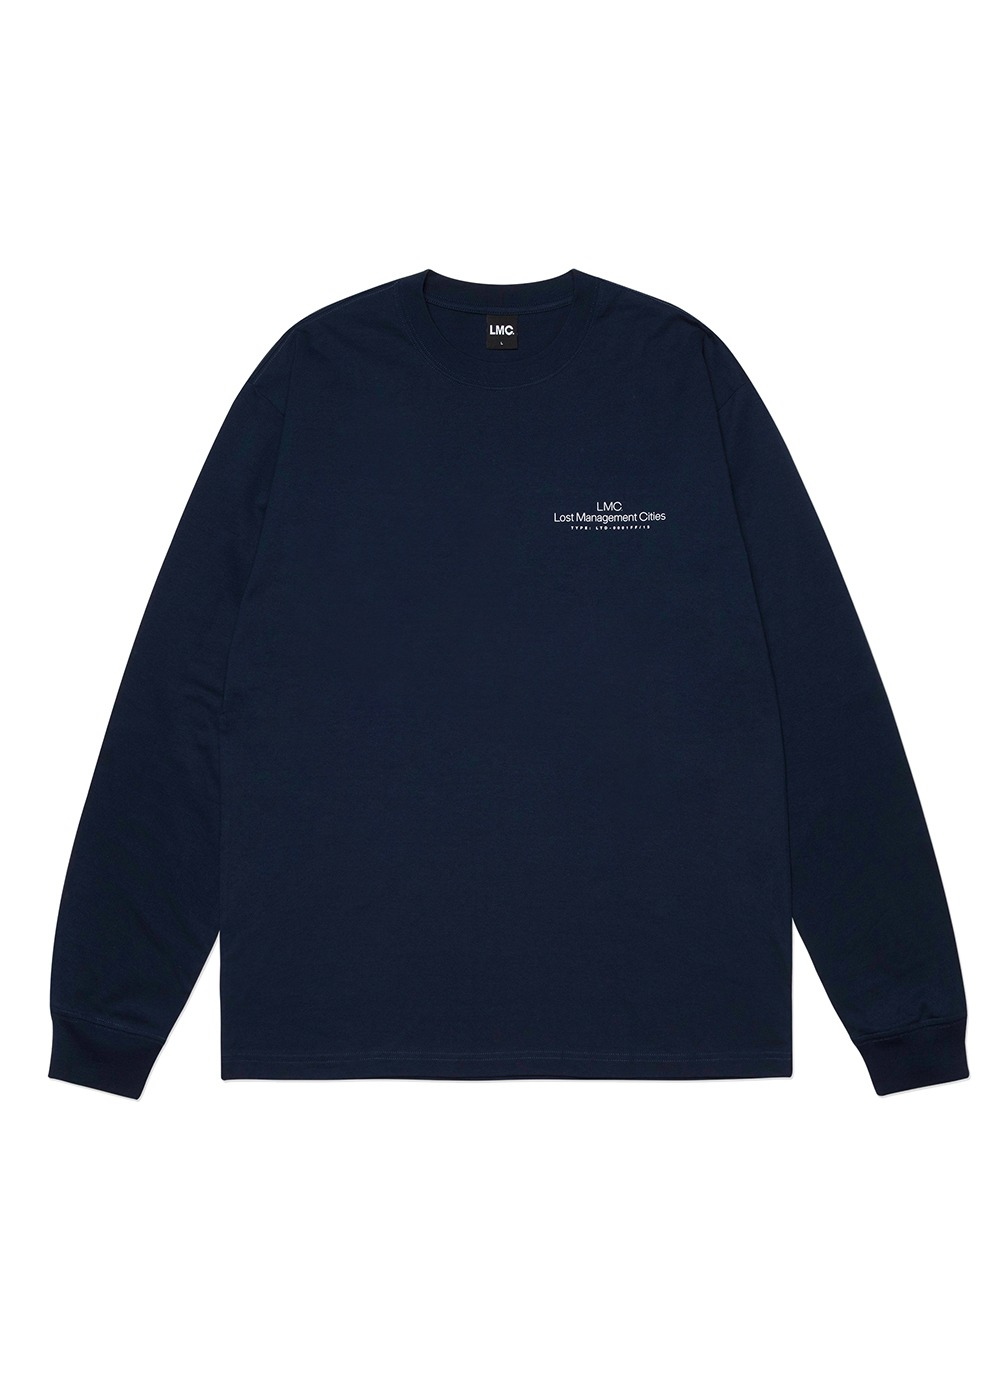 LMC THIN LOGO LONG SLV TEE navy